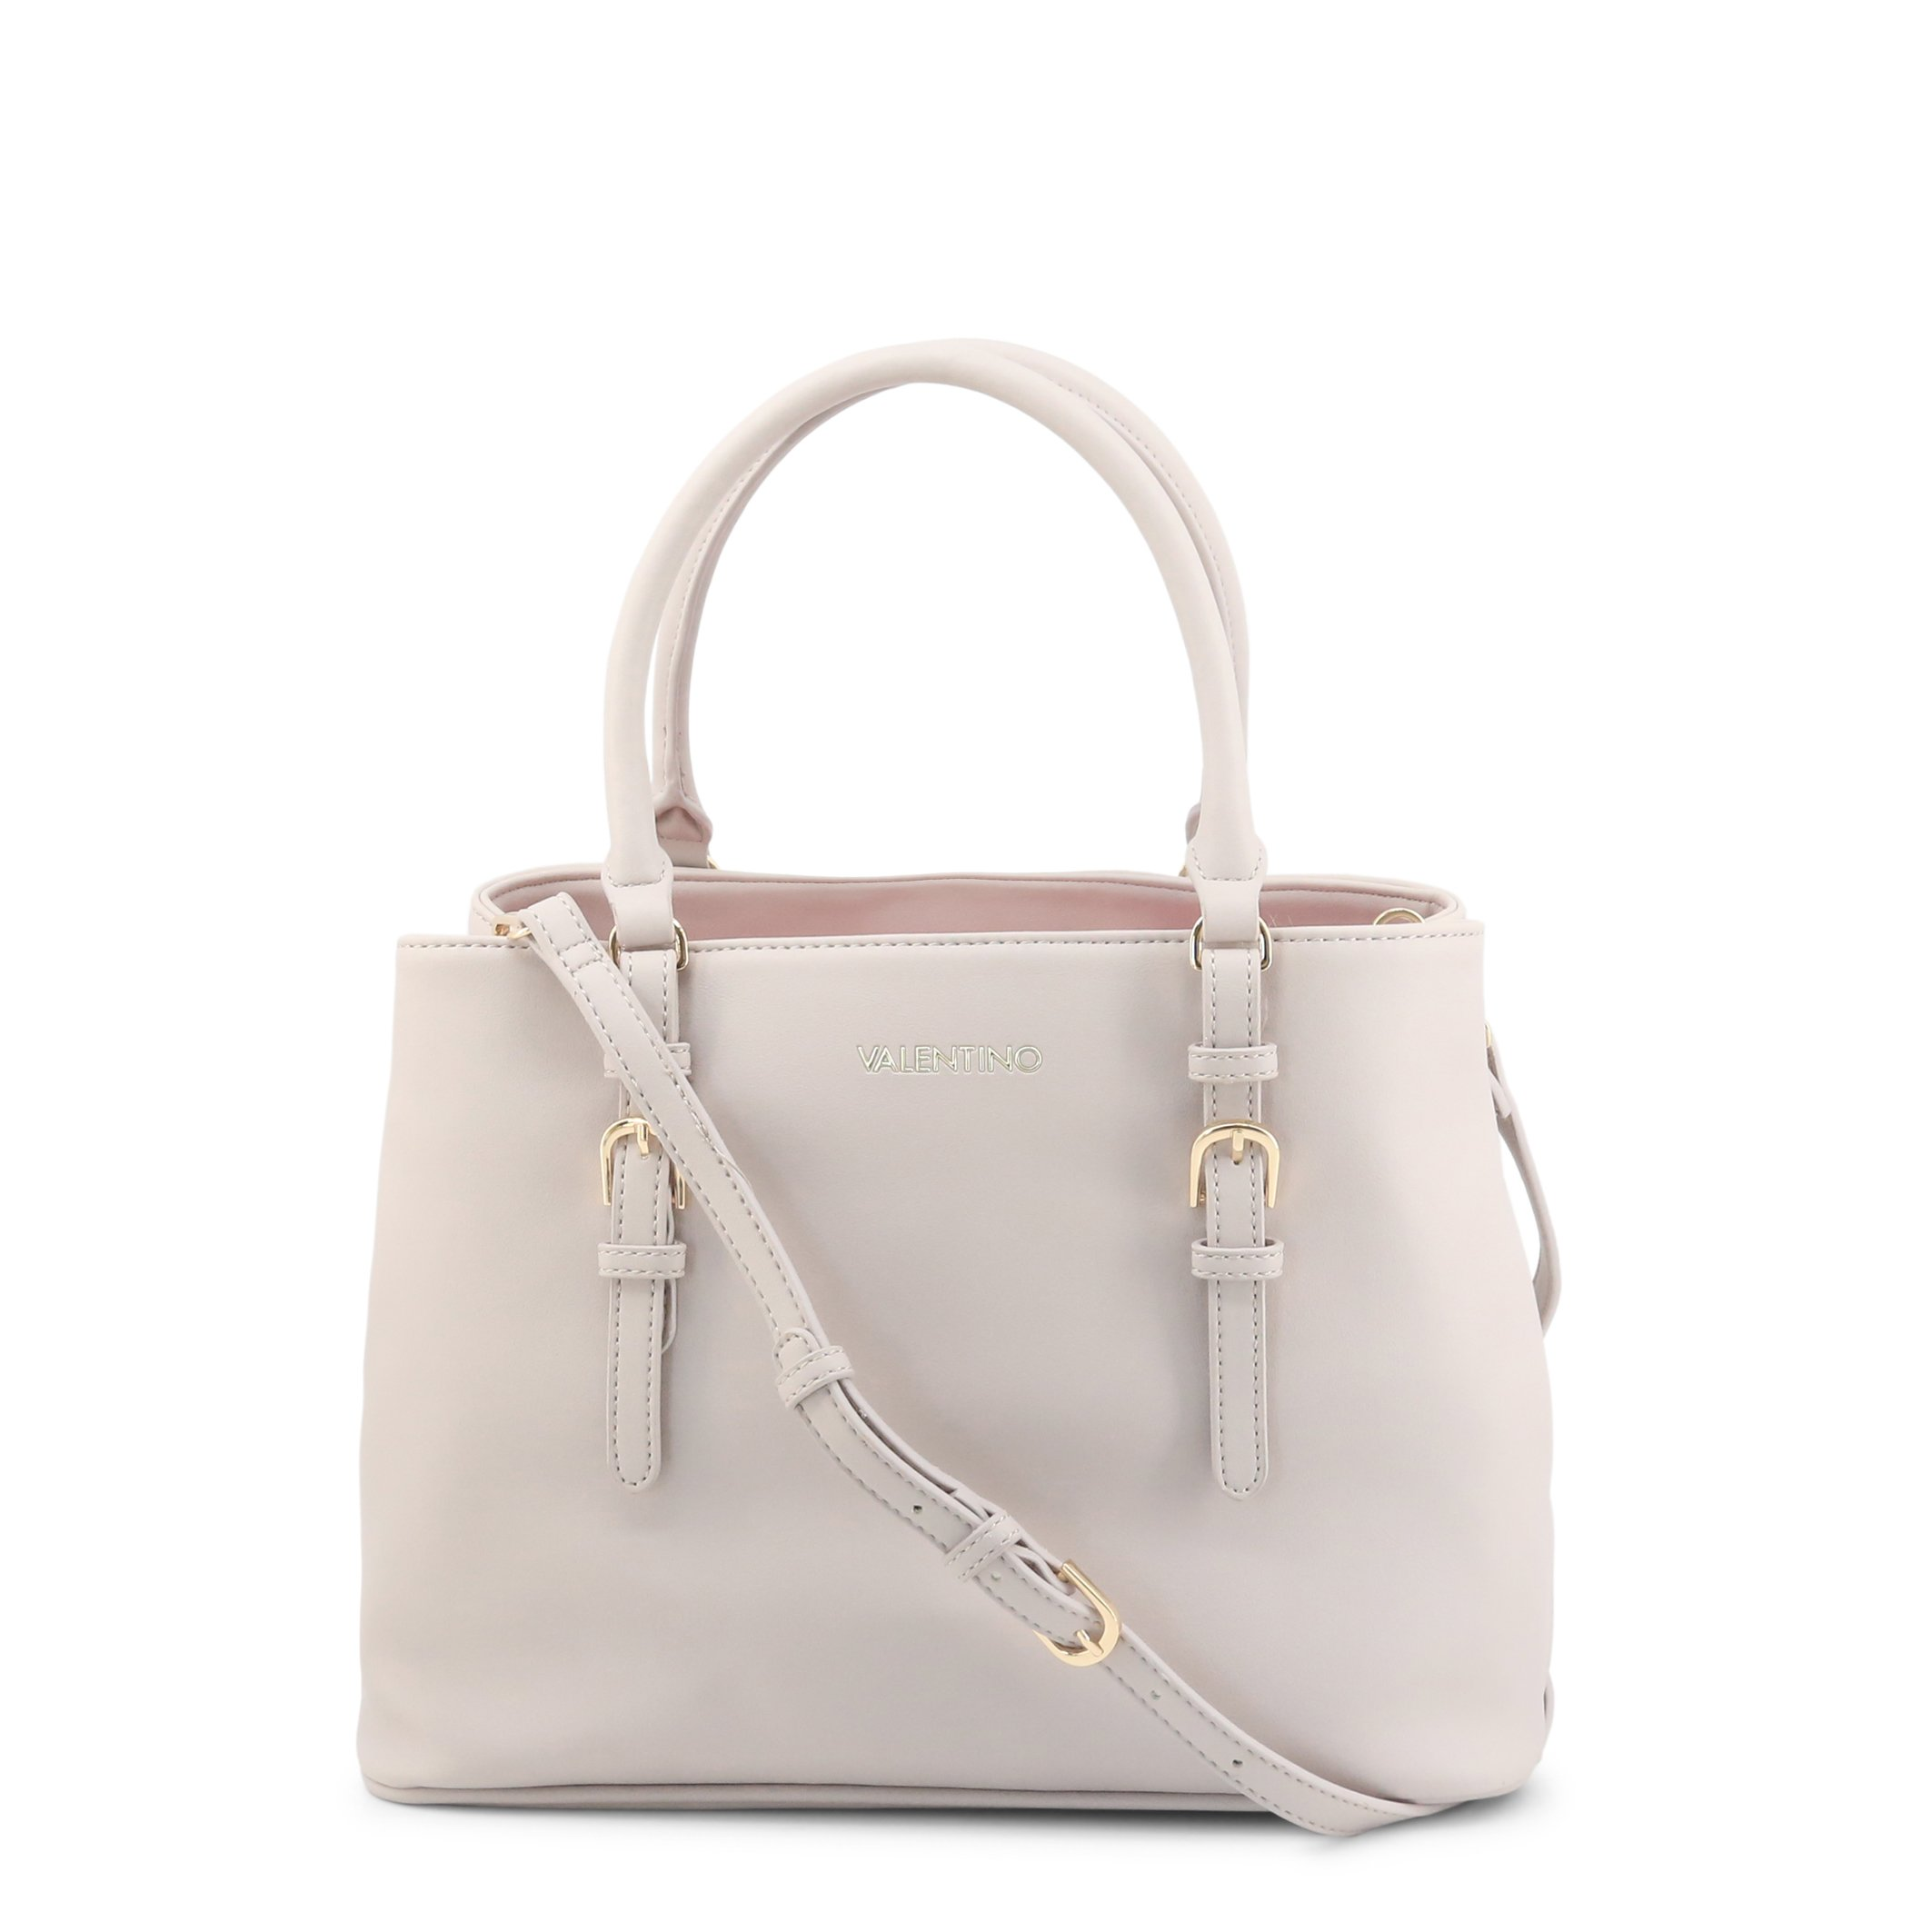 Valentino by Mario Valentino Women's Shoulder Bag Various Colours MEDUSA-VBS52O01 - brown NOSIZE